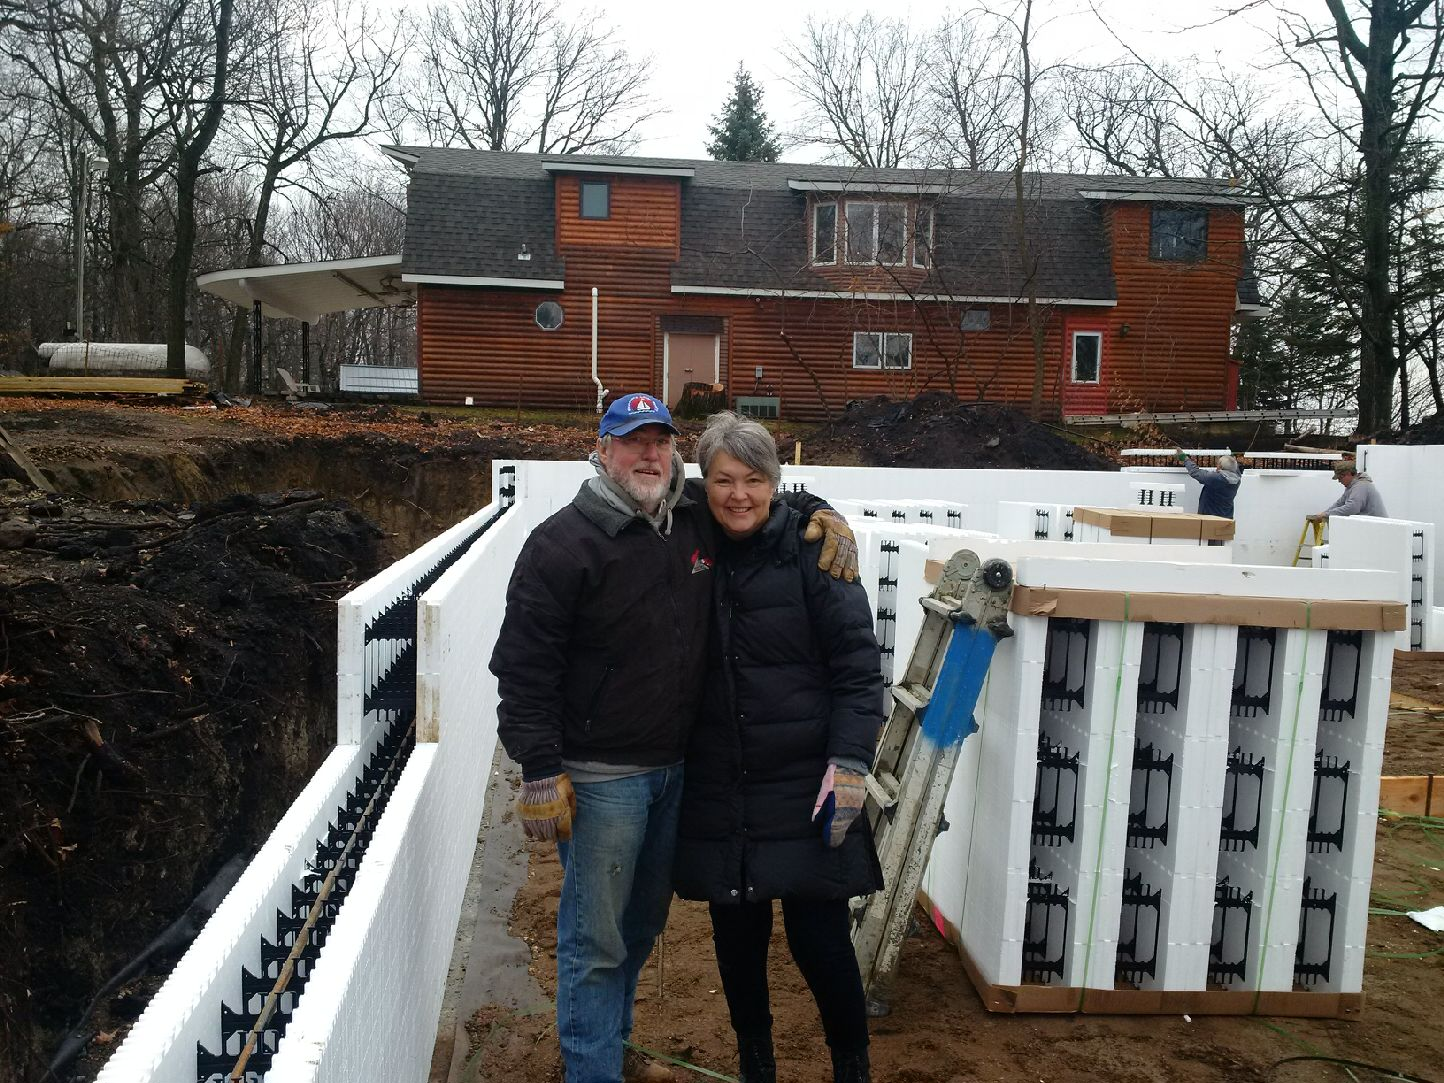 Press Release: Reiner Family Builds Ultimate Energy Efficient BuildBlock ICF Home on Lake Miltona